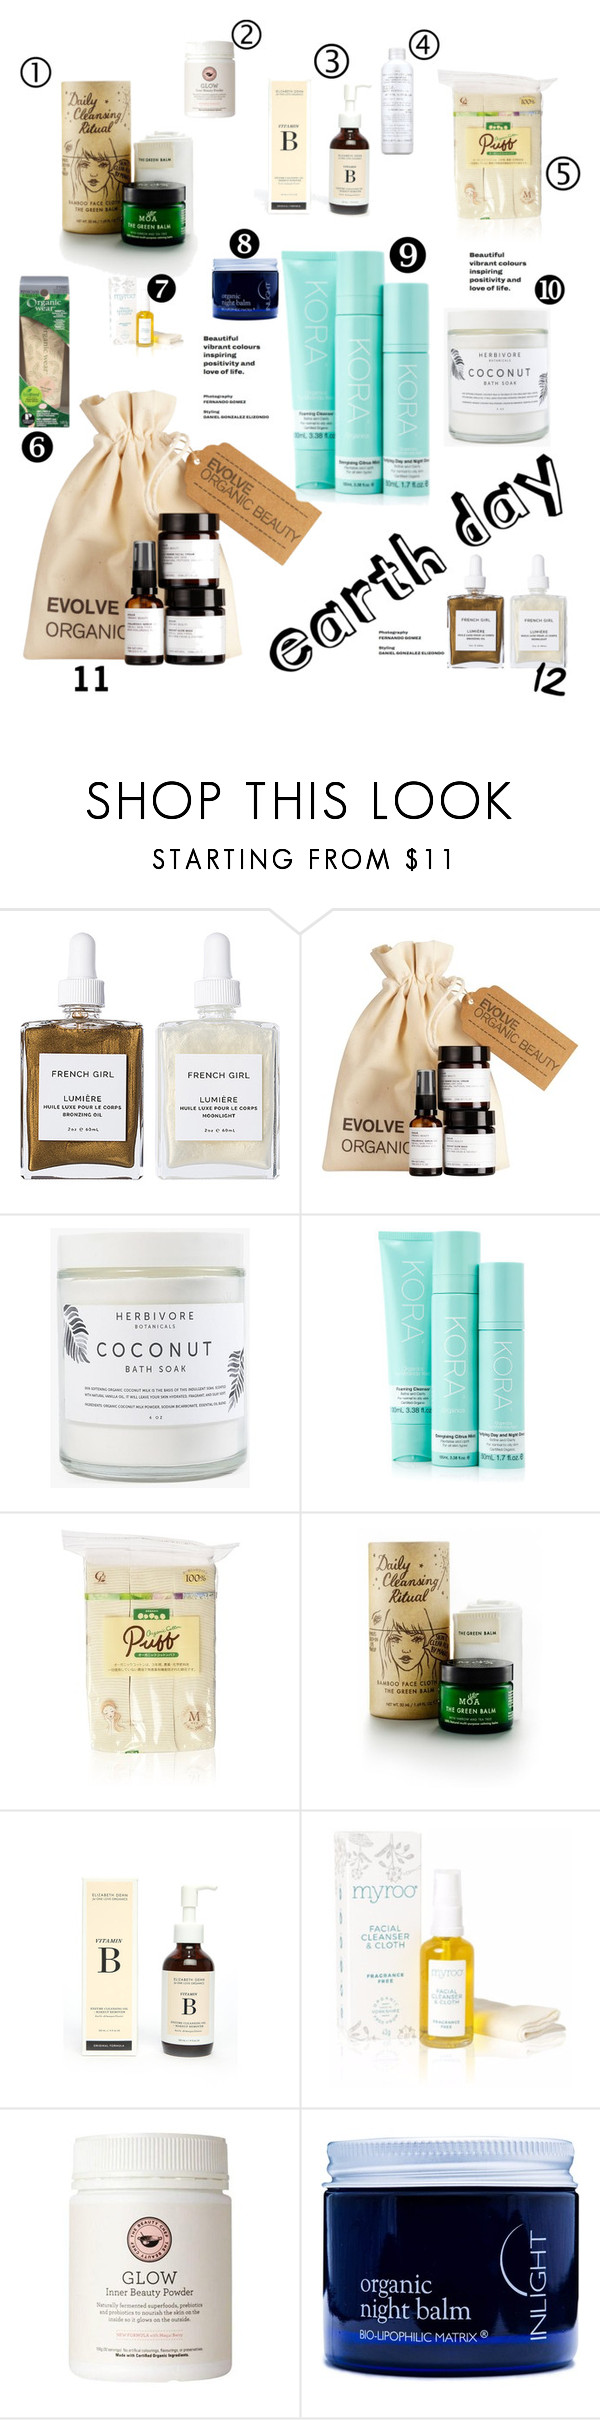 """""""Earth Day"""" by morellemomo ❤ liked on Polyvore featuring beauty, French Girl, Herbivore, KORA Organics by Miranda Kerr, MOA Magic Organic Apothecary, One Love Organics, Physicians Formula, Inlight Skincare and VMV Hypoallergenics"""